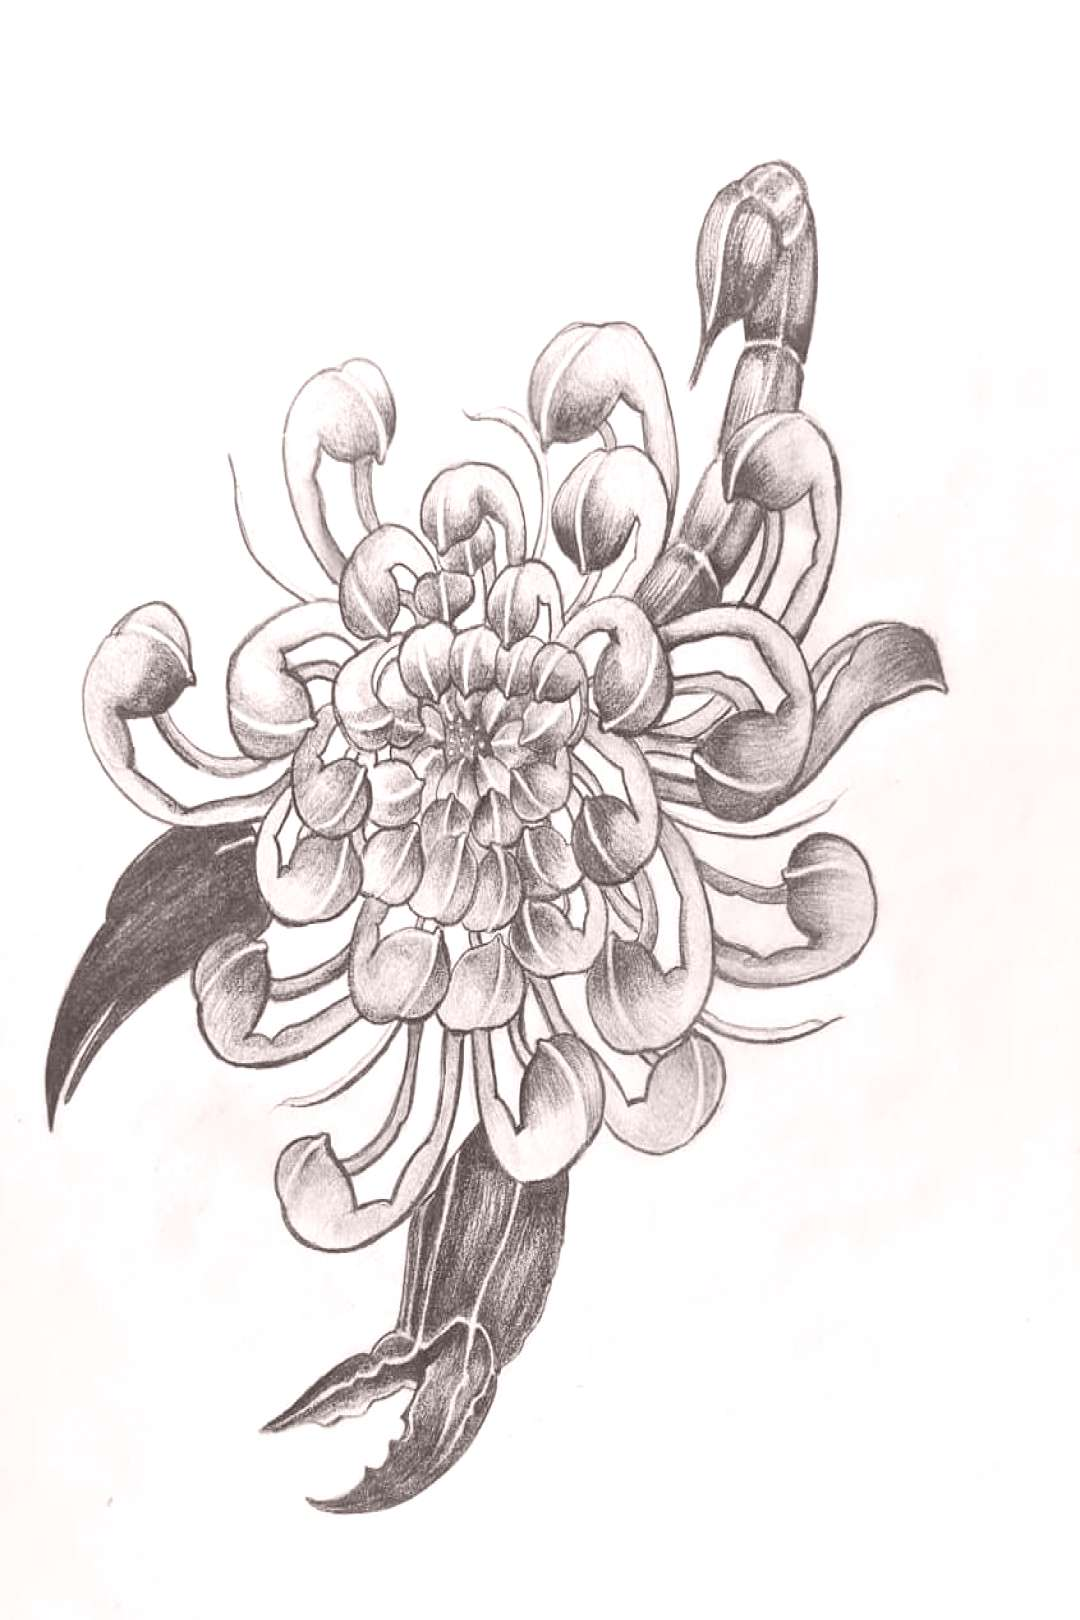 Tattoo ideas?design available for tattoo, DM for more details?